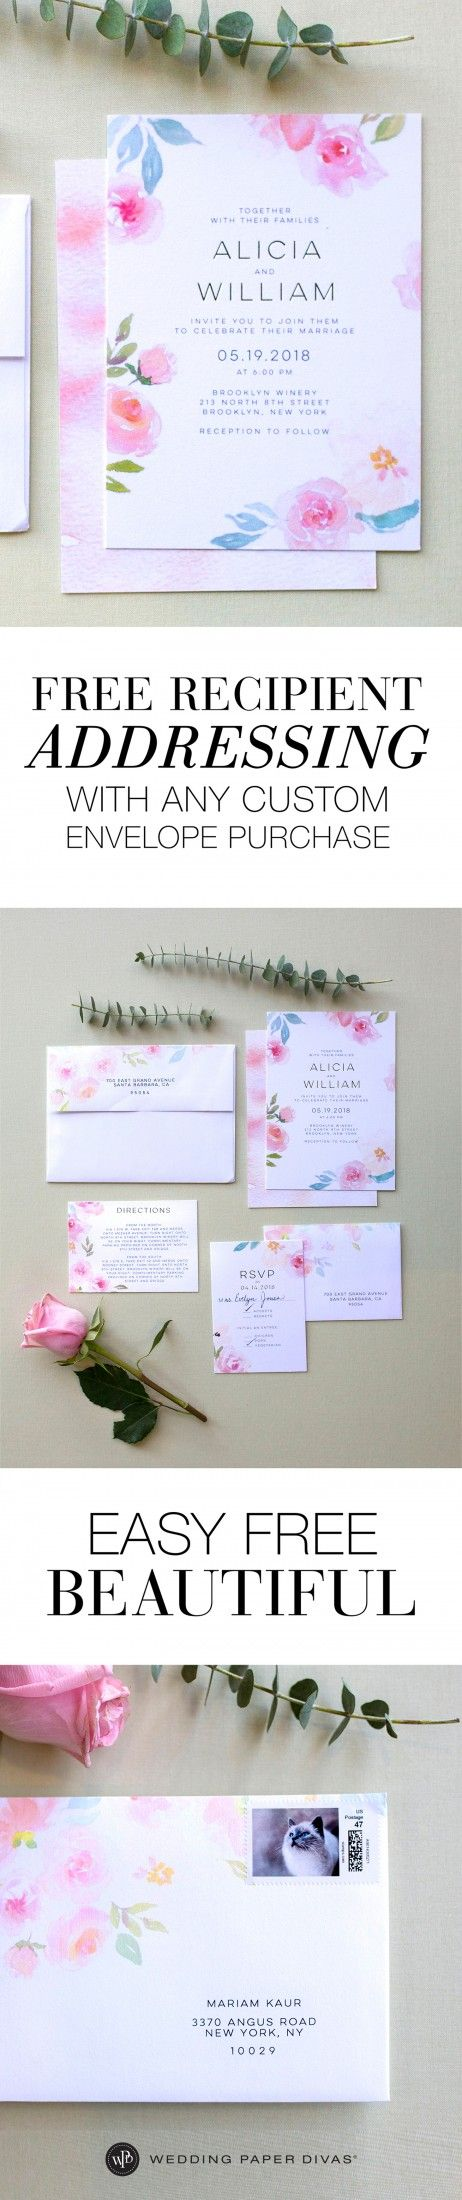 wildflower wedding invitation templates%0A cover letters for students